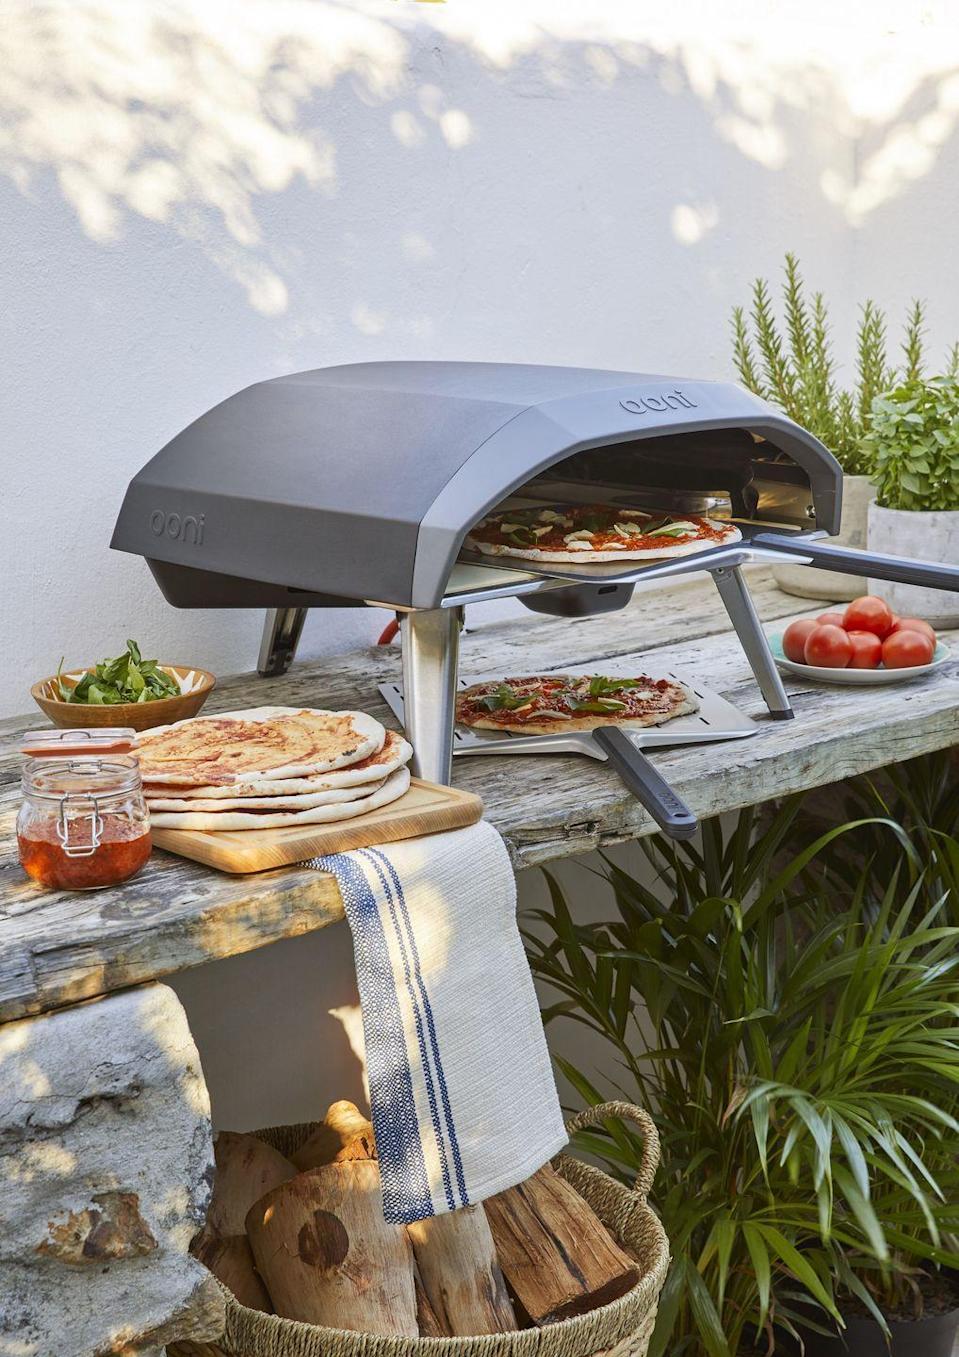 """<p>Get set for a summer barbecue with John Lewis' must-have range of dining essentials. From pizza ovens to serving platters, you'll find everything you need for a summertime feast.</p><p><a class=""""link rapid-noclick-resp"""" href=""""https://go.redirectingat.com?id=127X1599956&url=https%3A%2F%2Fwww.johnlewis.com%2Fbrowse%2Fhome-garden%2Fbbqs-outdoor-heating%2Fbbqs%2F_%2FN-5upb&sref=https%3A%2F%2Fwww.housebeautiful.com%2Fuk%2Flifestyle%2Fg35954786%2Fjohn-lewis-garden-collection-spring-summer%2F"""" rel=""""nofollow noopener"""" target=""""_blank"""" data-ylk=""""slk:SHOP NOW"""">SHOP NOW</a></p>"""